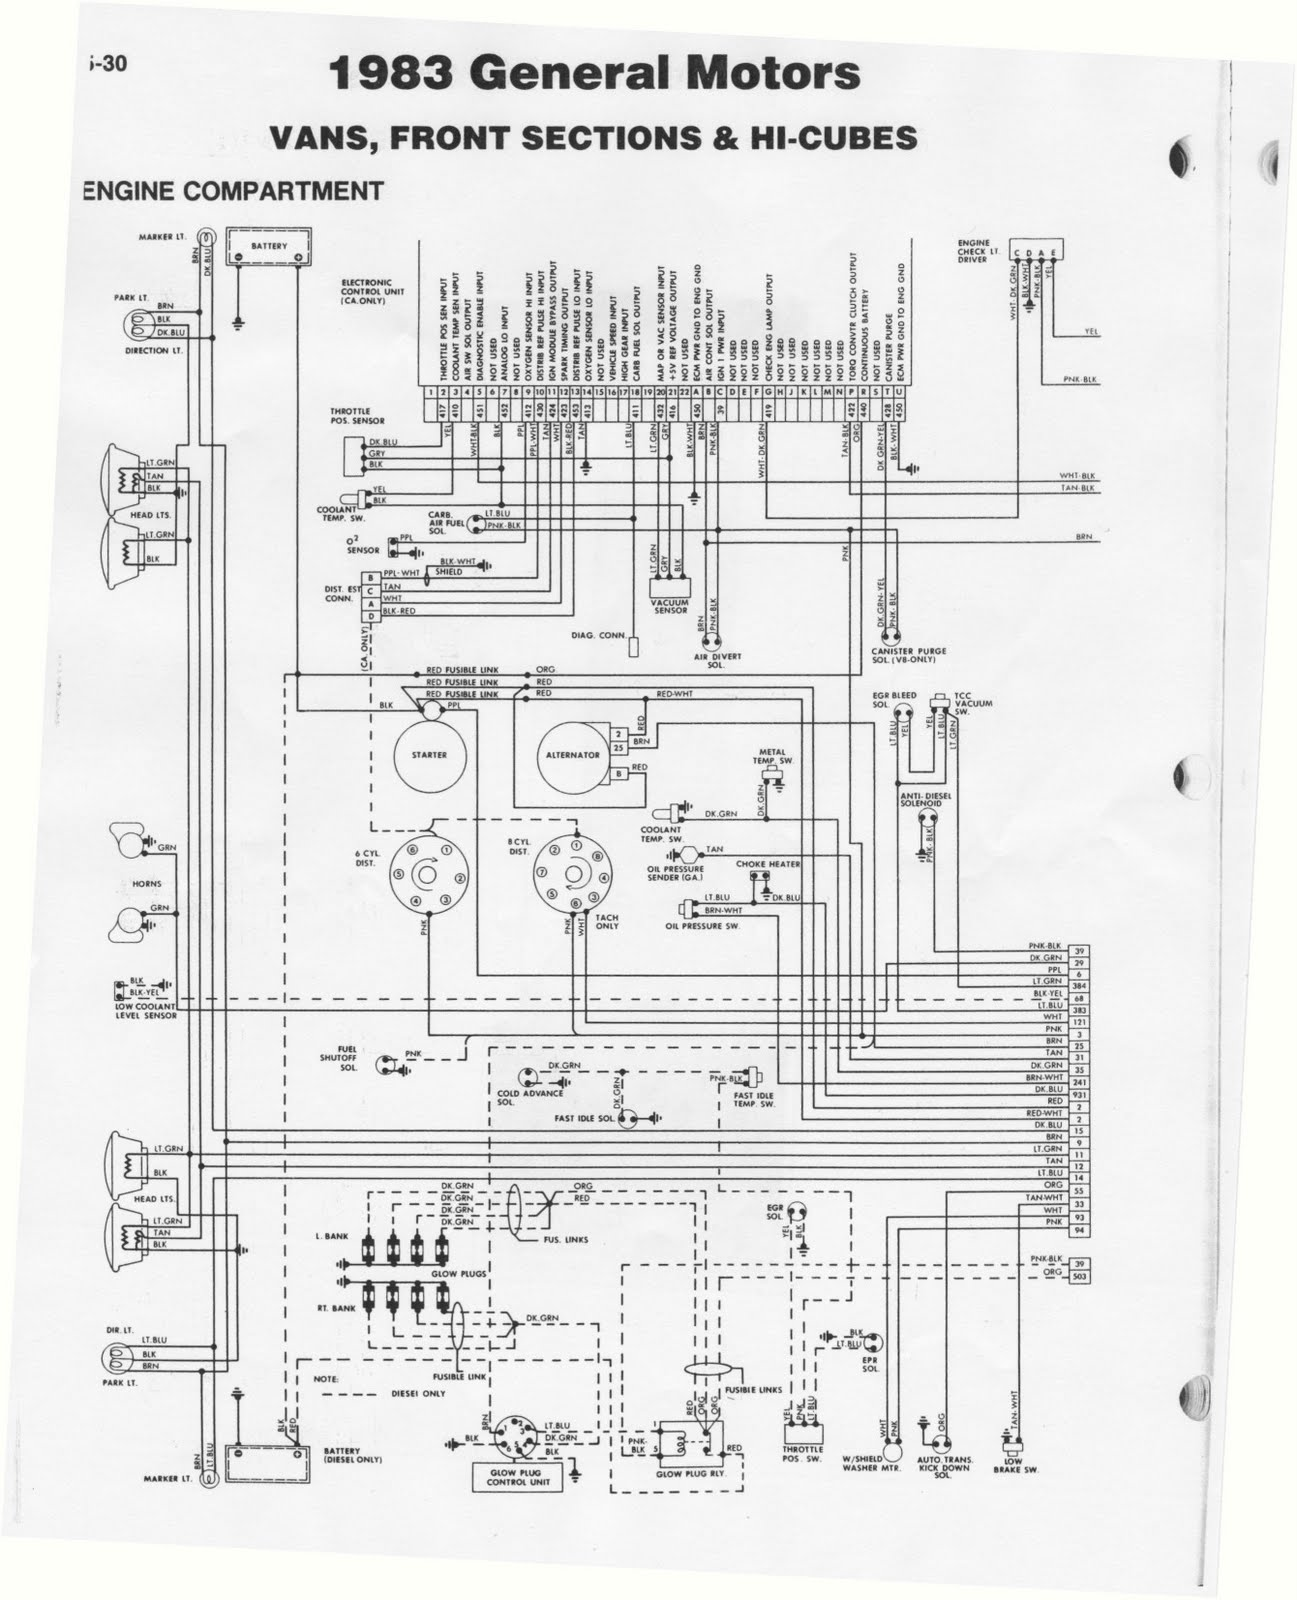 Ford E 350 Motorhome Wiring Diagram | Wiring Liry  Jeep Cj Wiring Diagram on austin seven wiring-diagram, 1986 jeep cj7 wiring-diagram, vw polo wiring-diagram, 79 jeep cj7 wiring-diagram, 1978 jeep cj7 wiring-diagram, 1976 jeep cj7 wiring-diagram, chinese quad wiring-diagram, 1979 jeep wagoneer, 1985 jeep cj7 wiring-diagram, 1982 jeep cj7 wiring-diagram, jeepster commando wiring-diagram, 1981 jeep cj7 258 wiring-diagram, 1984 jeep cj7 wiring-diagram, 1980 jeep cj7 wiring-diagram, 84 jeep cj7 wiring-diagram, garage wiring-diagram, austin healey sprite wiring-diagram, 1979 jeep cj5 fuse box, 7 pin trailer lights wiring-diagram, electric choke wiring-diagram,